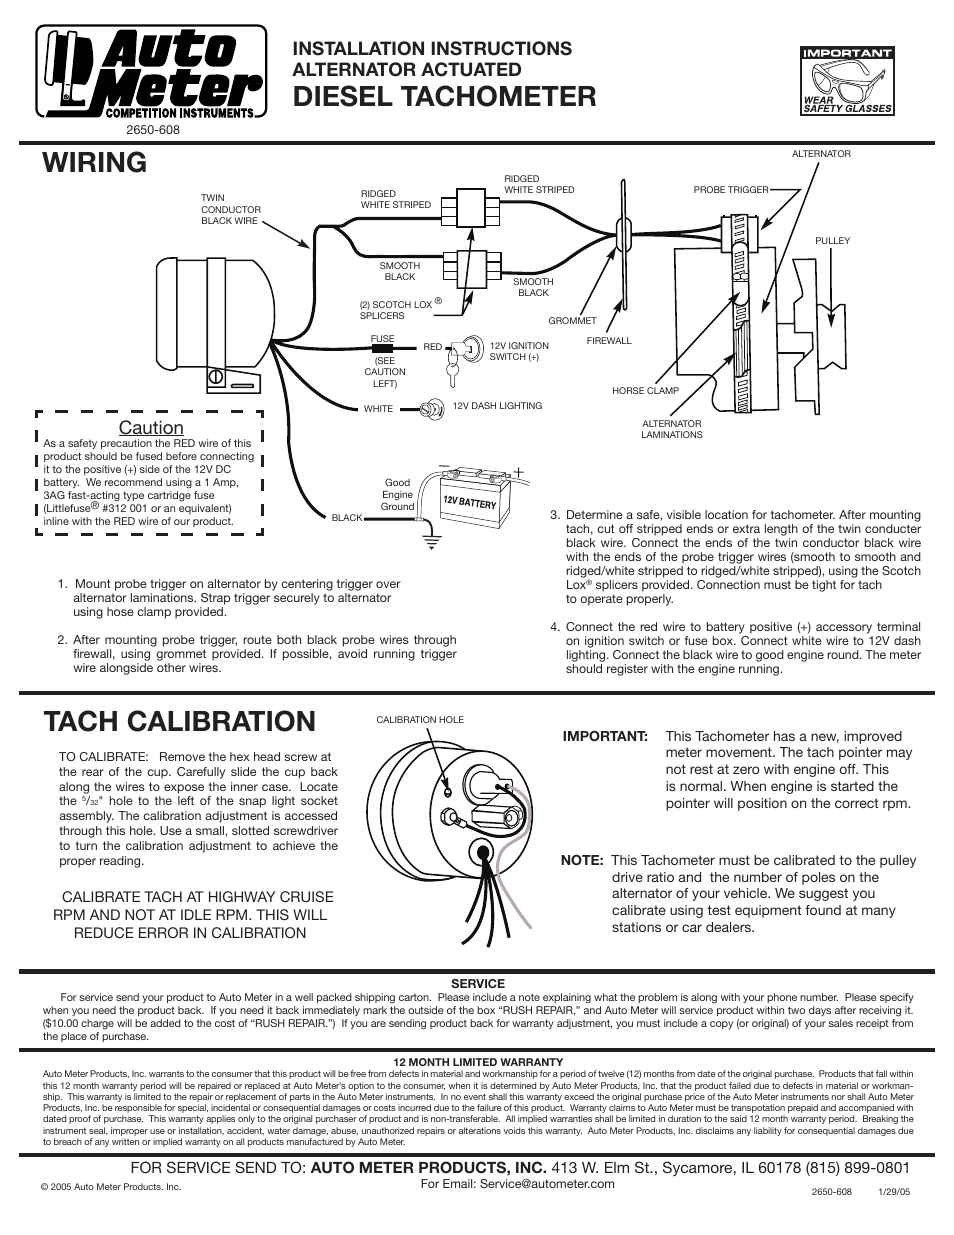 Tachometer Wiring Diagram from i0.wp.com